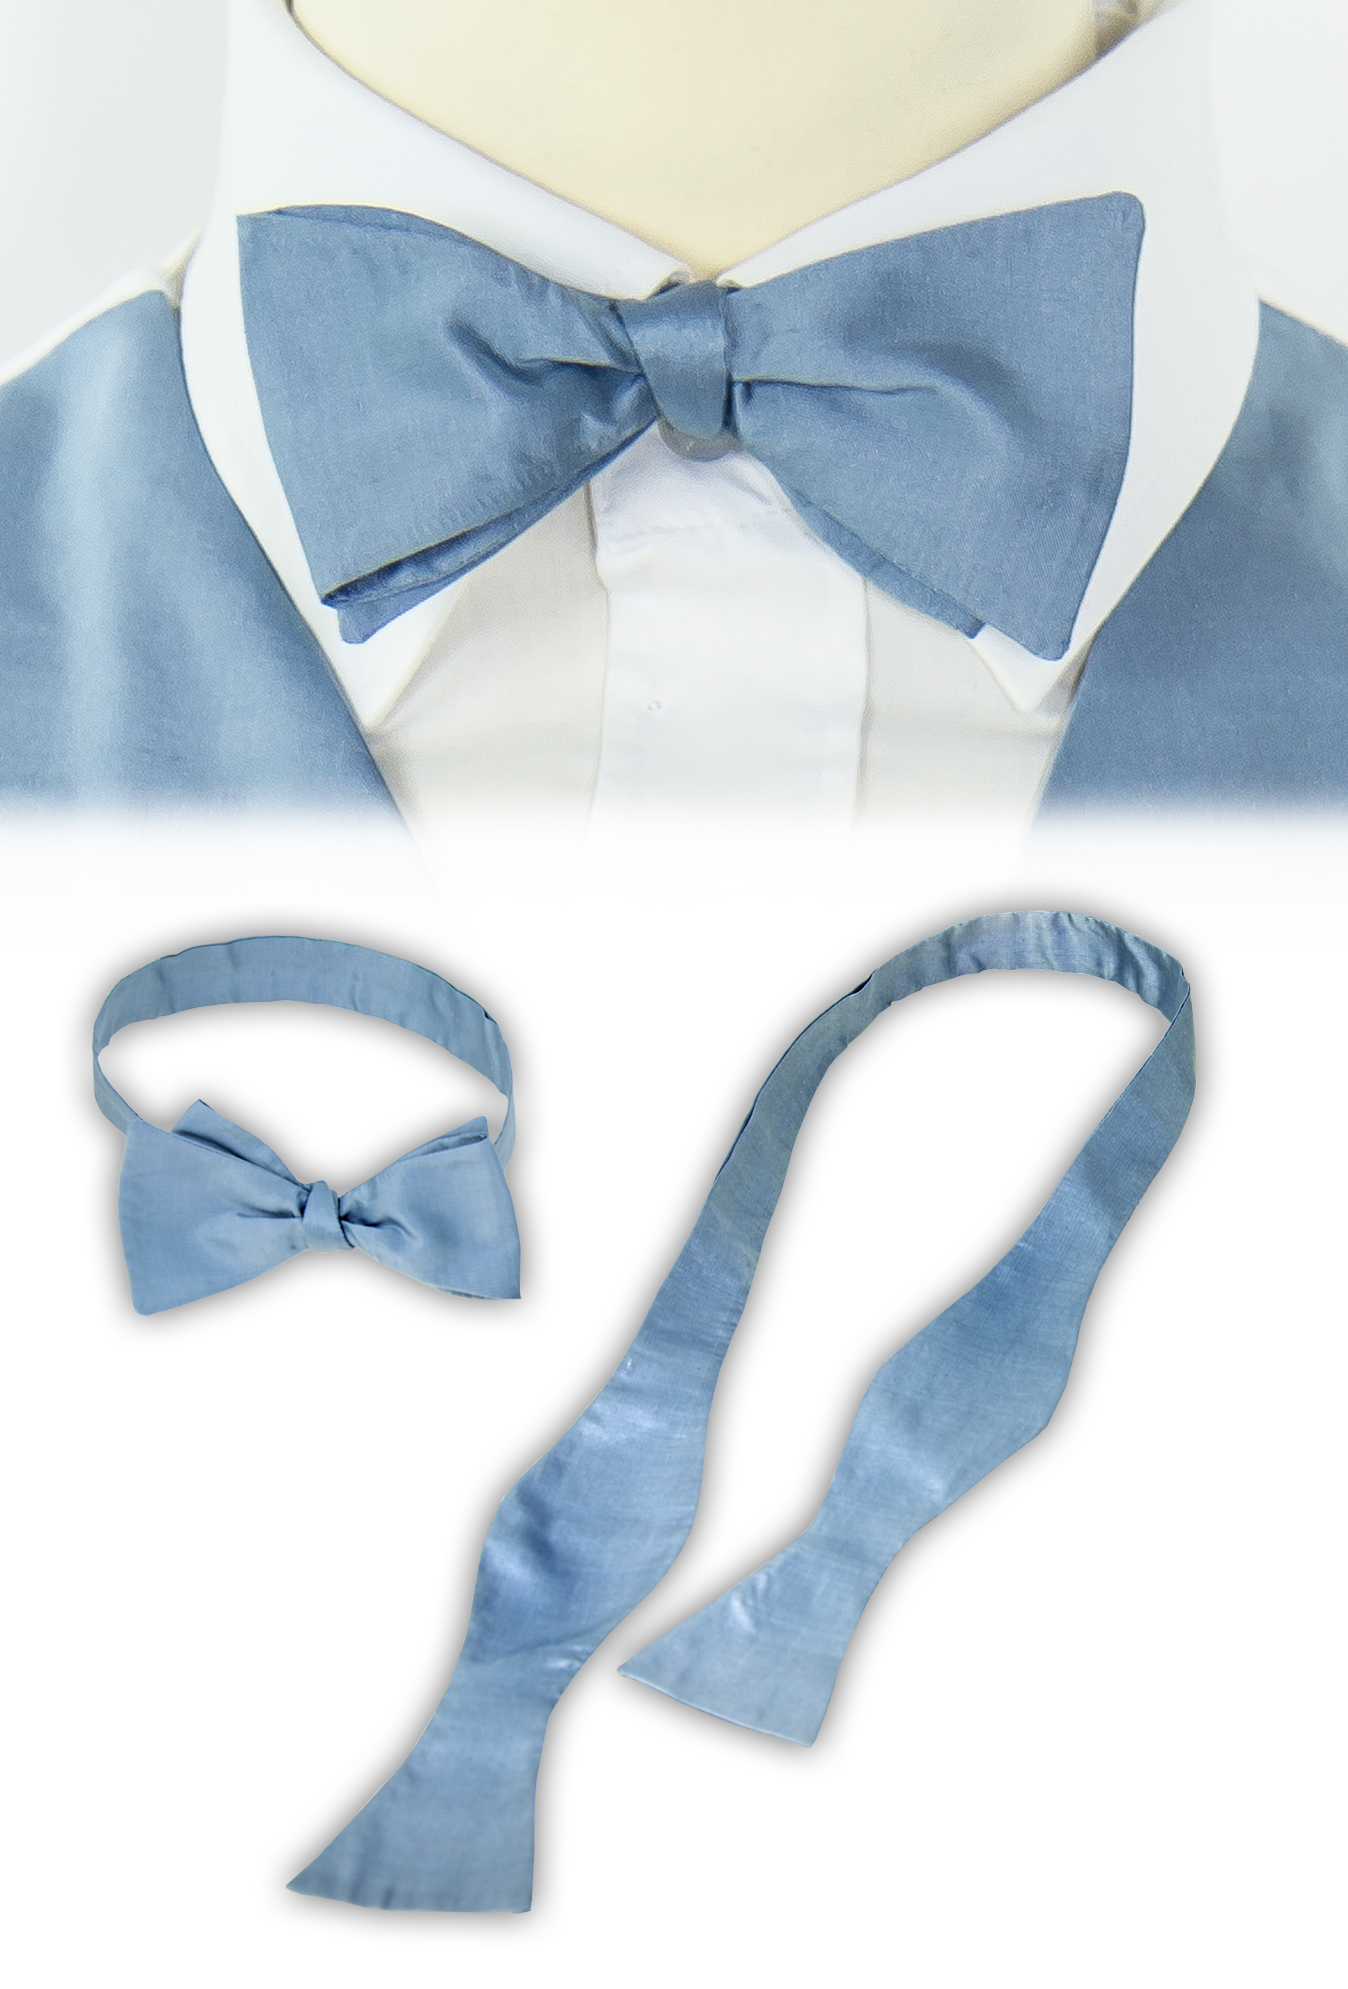 d1da41bb759a Mr Ireland Bow Tie - Waistcoats Direct